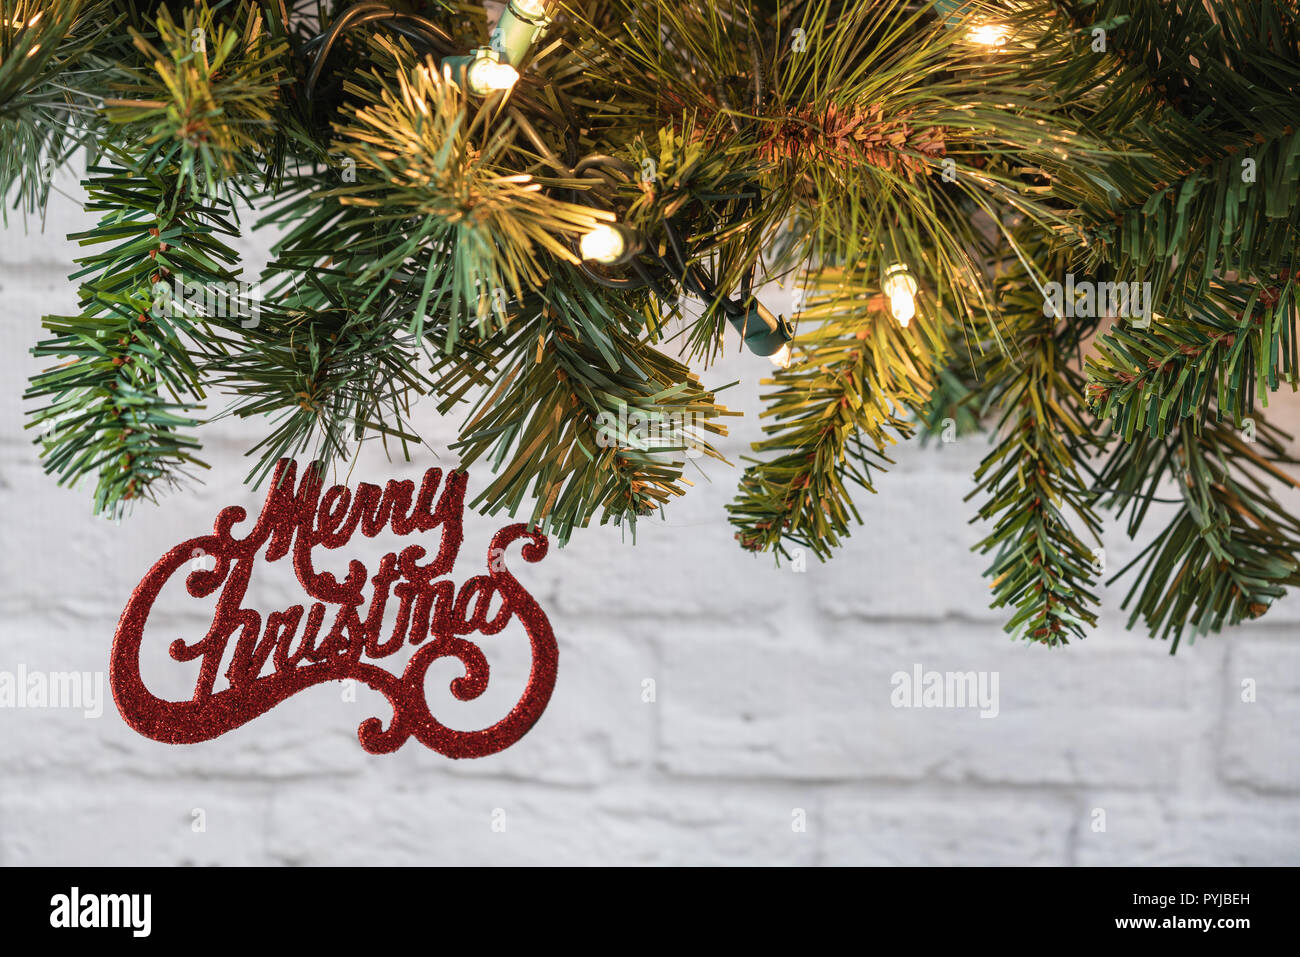 Merry Christmas Glitter Ornament Hanging From Greenery Garland In